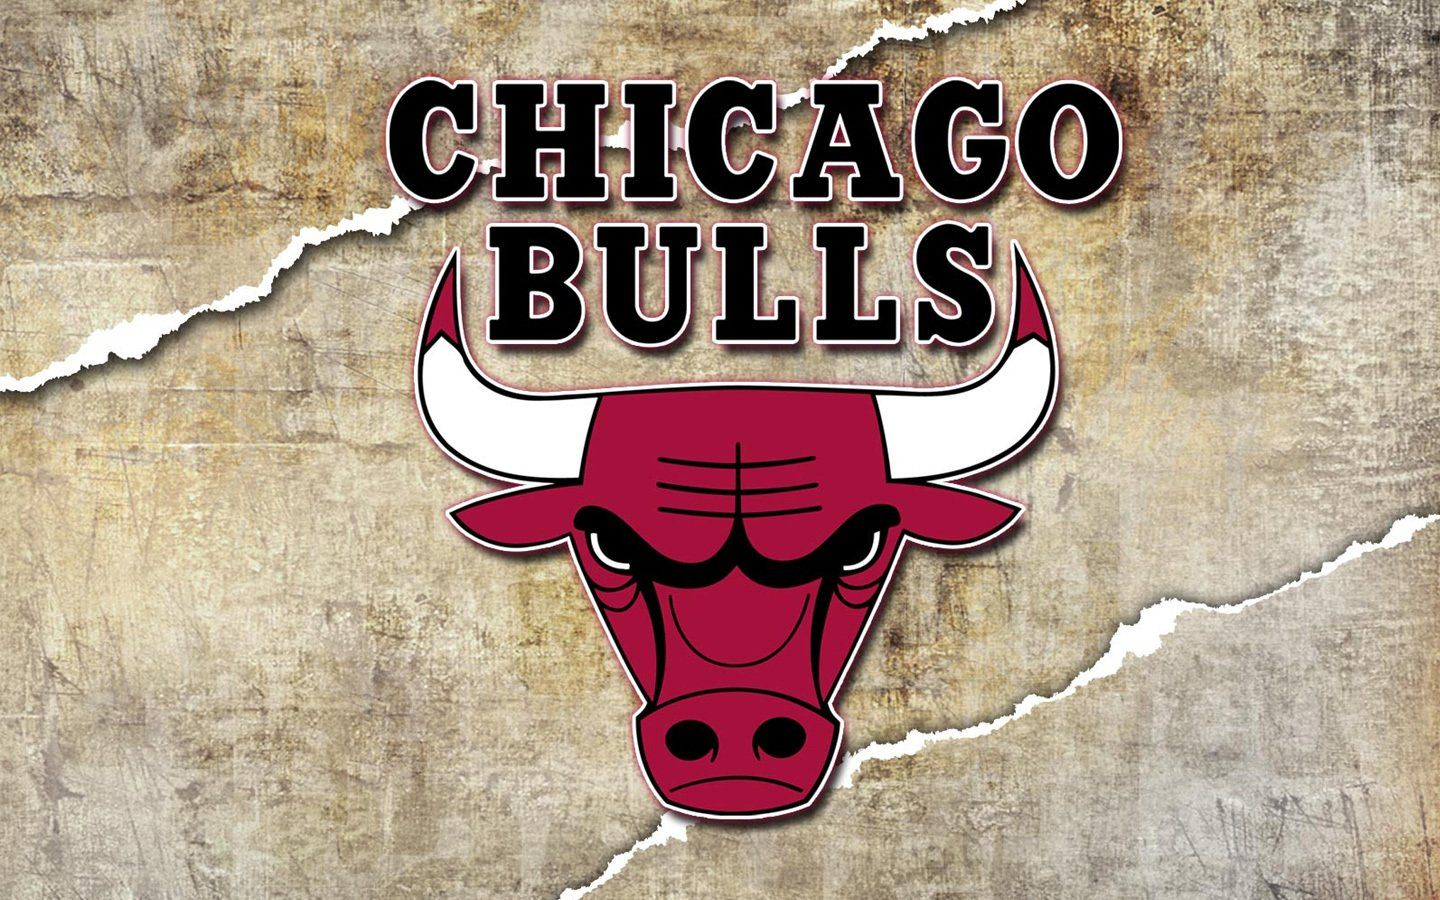 Chicago Sports Iphone Wallpaper Hd: Chicago Bulls HD Wallpapers Backgrounds Wallpaper